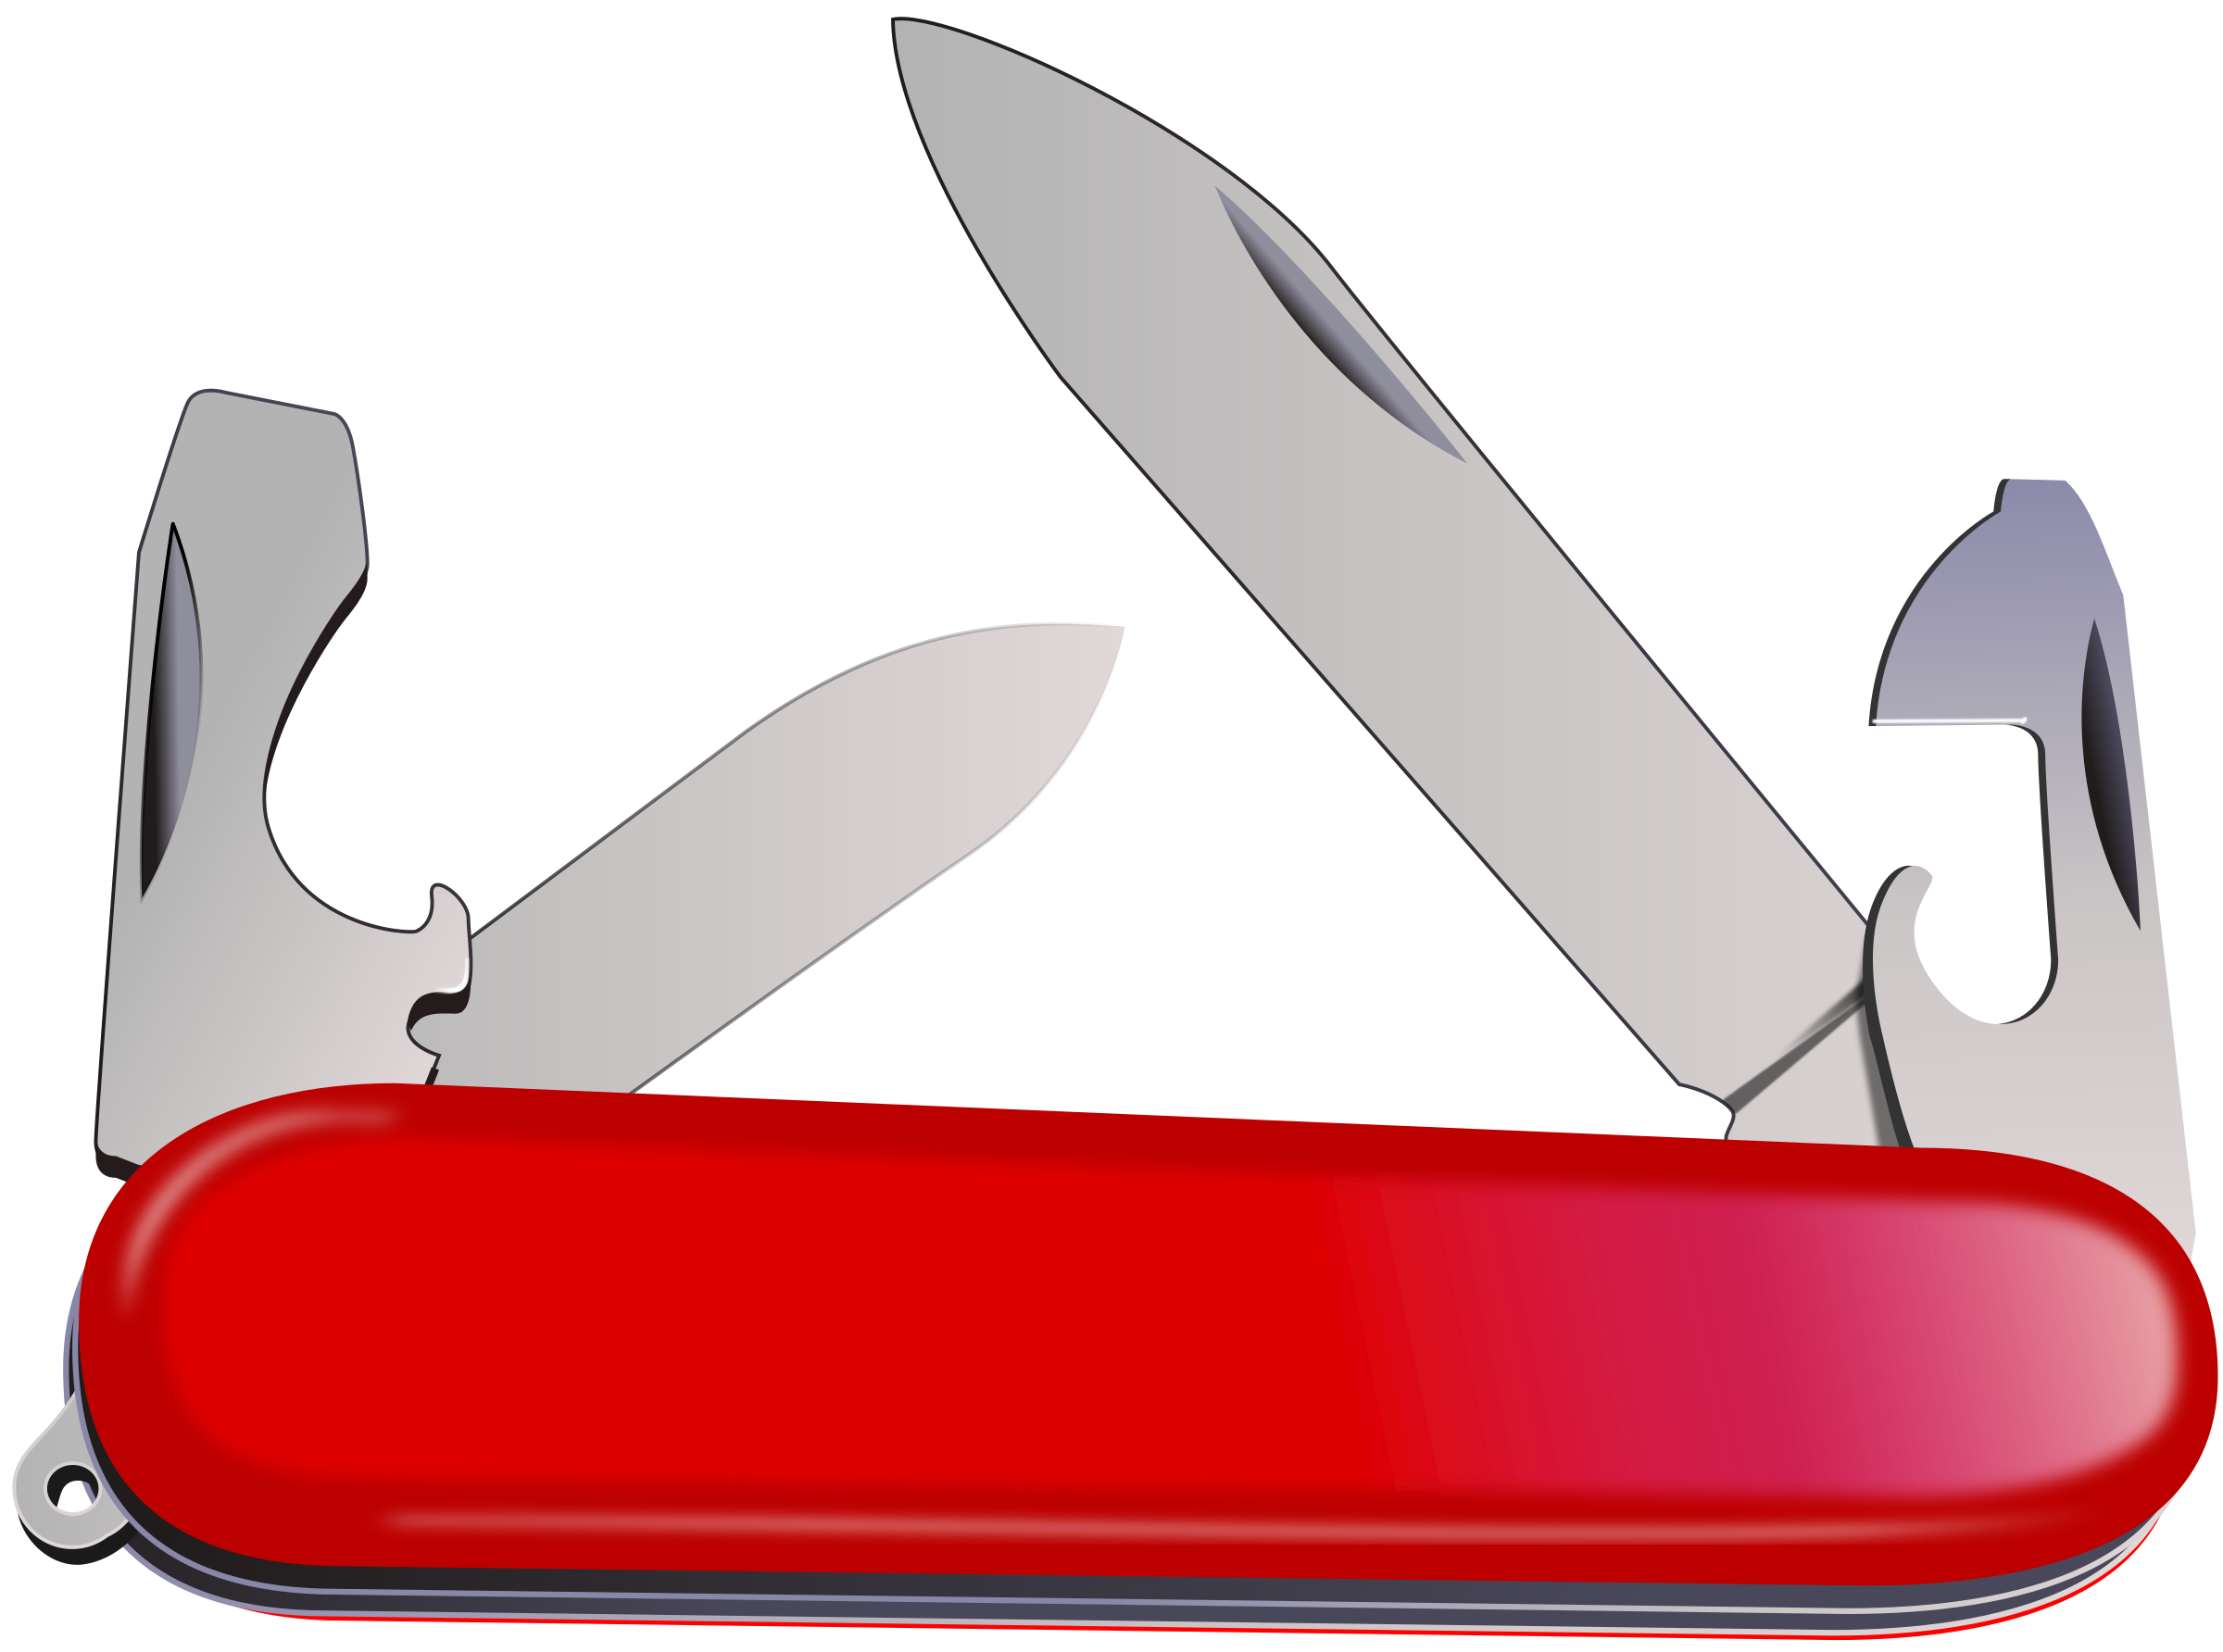 Swiss Army Knife by uliphant